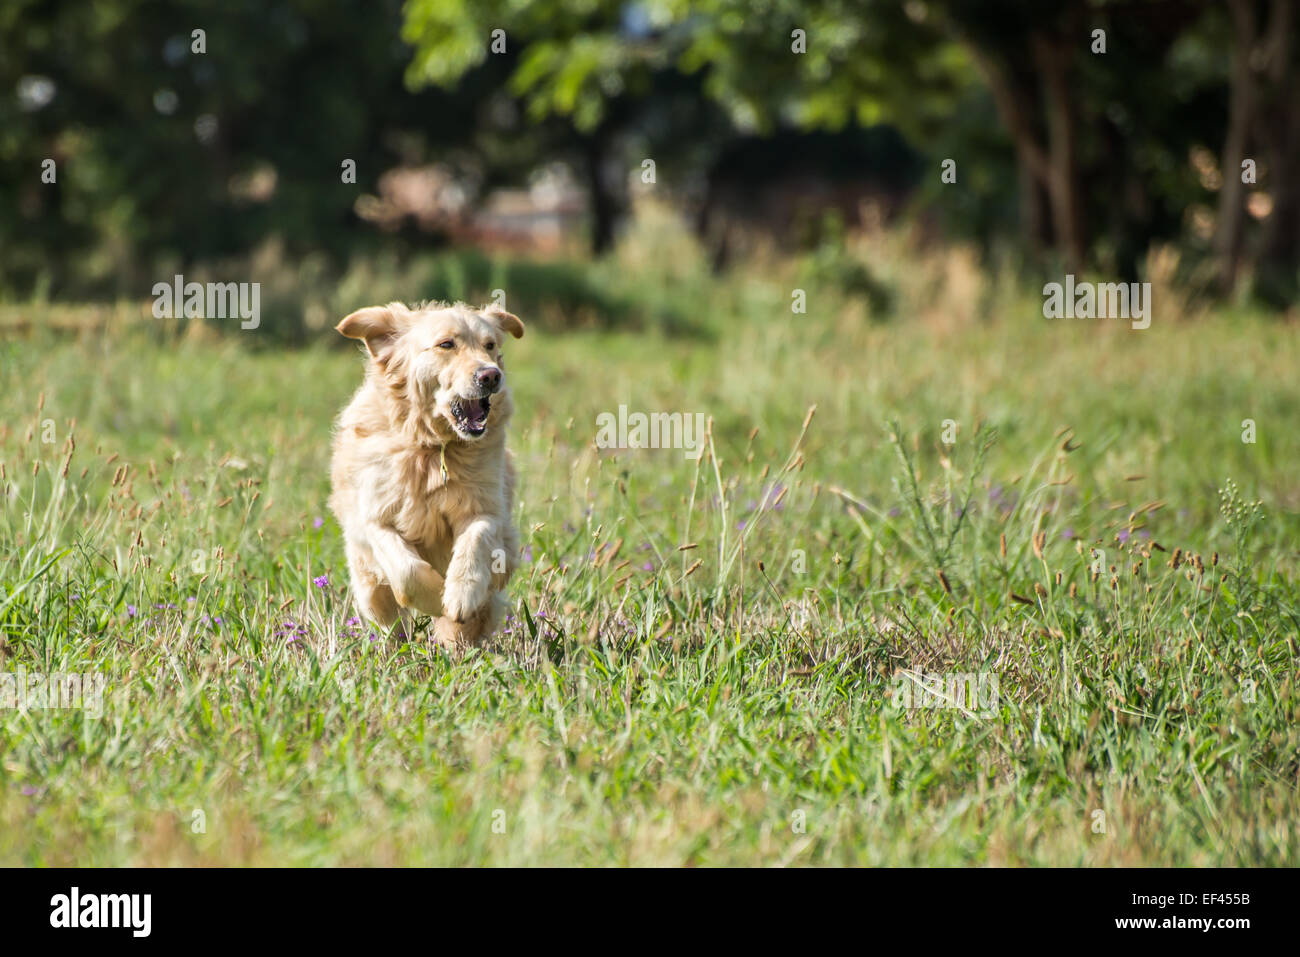 Golden Retriever at running through the fields at full speed, and enjoying herself. - Stock Image